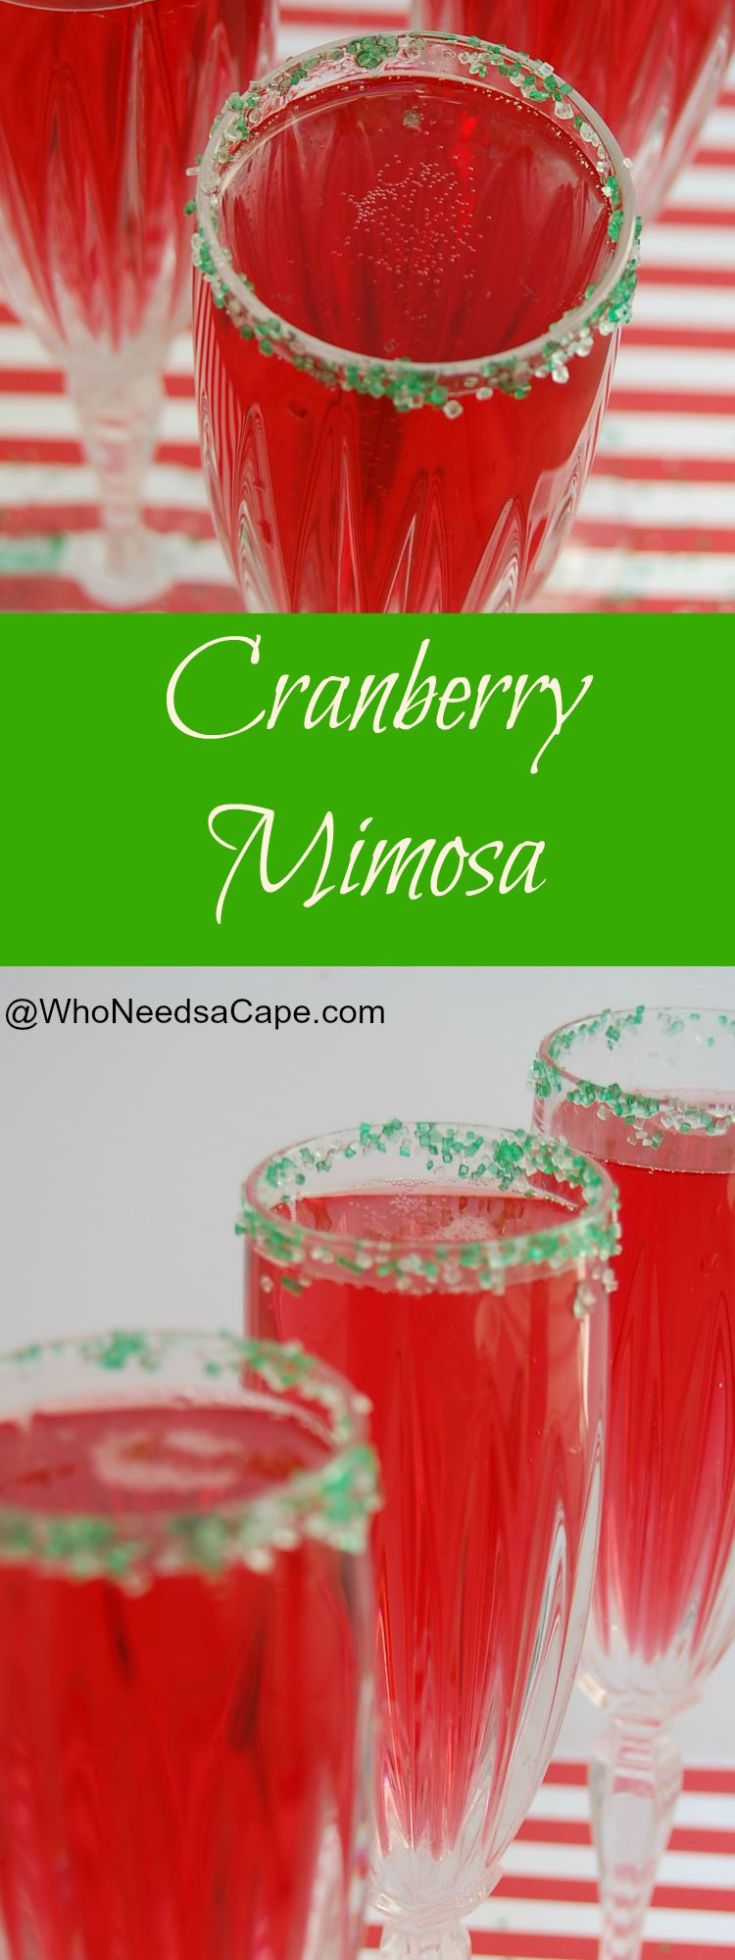 Cranberry Mimosa (or a Poinsettia) is the perfect holiday cocktail. Serve this champagne cocktail at brunch, breakfast, dinner and holiday parties.